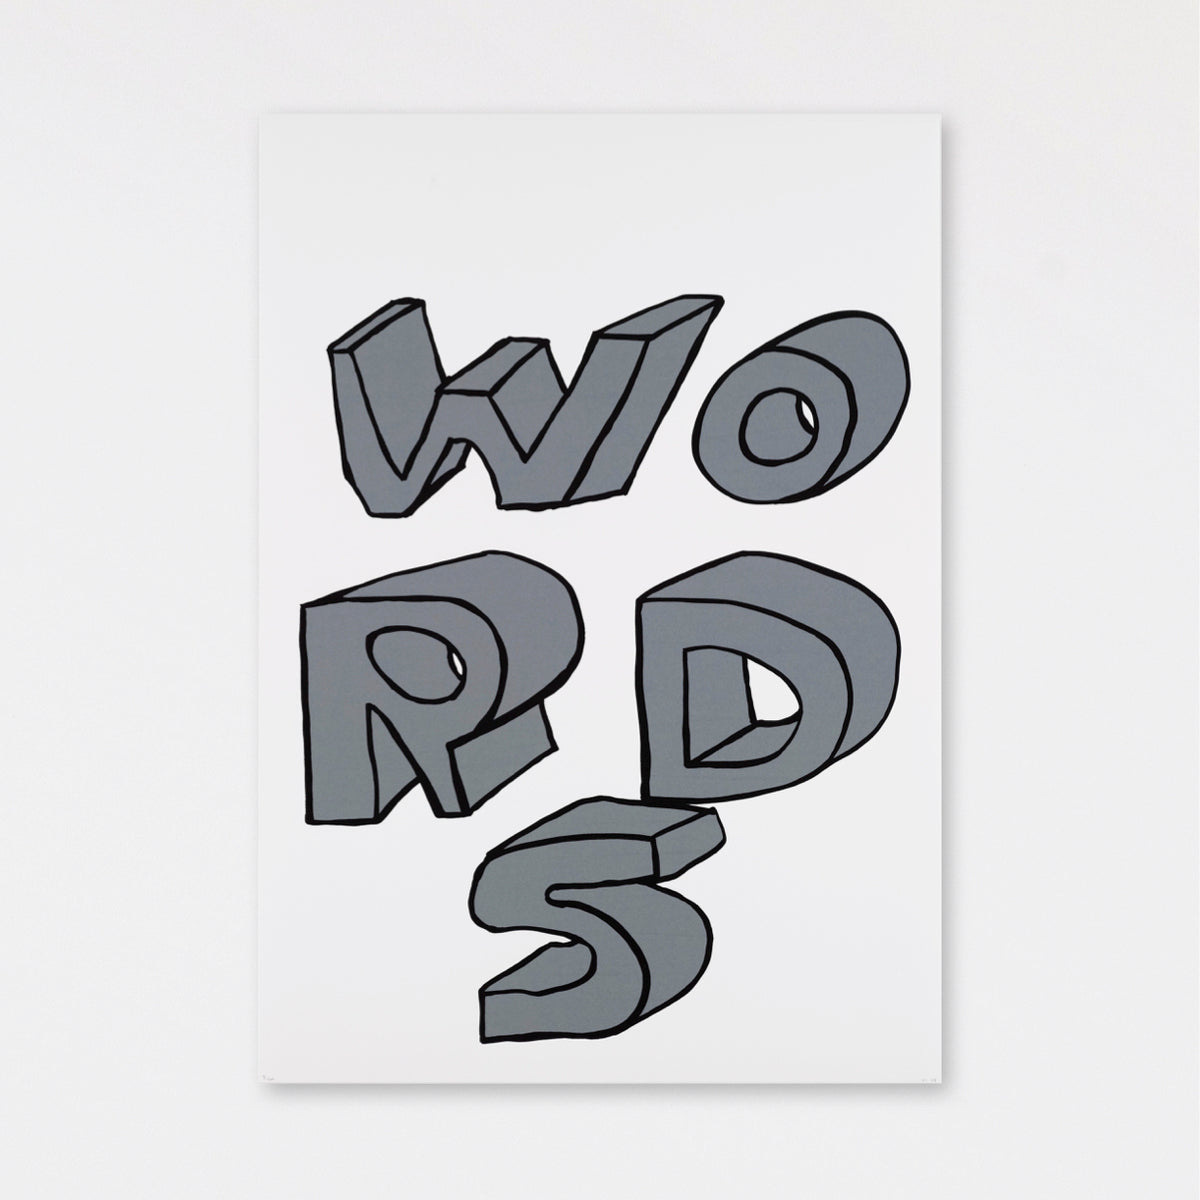 Untitled (Words) (2008)